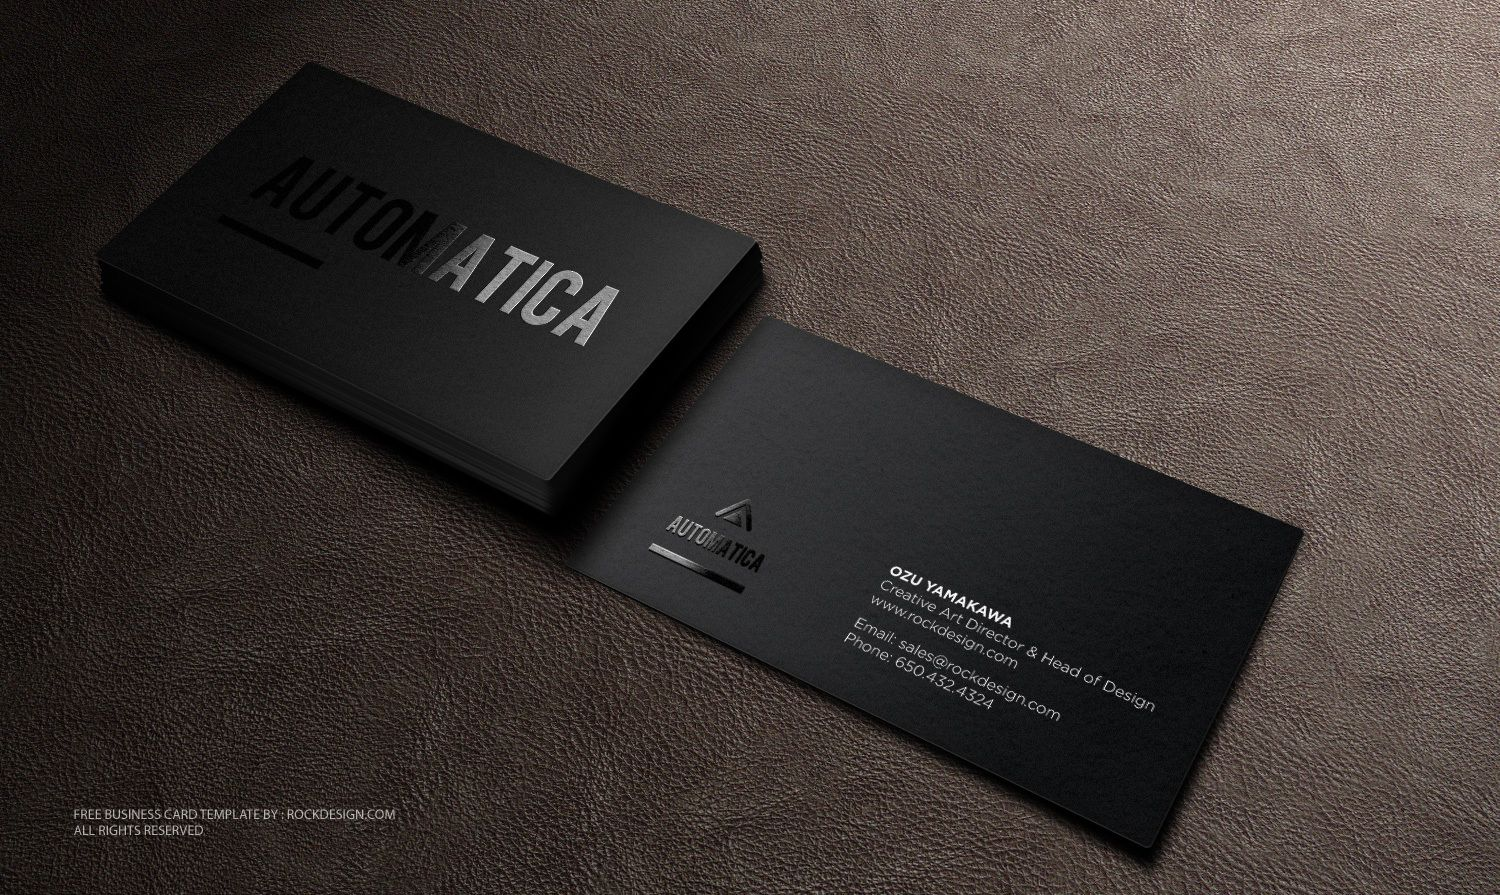 Black business card template download free design templates black business card template download free design templates friedricerecipe